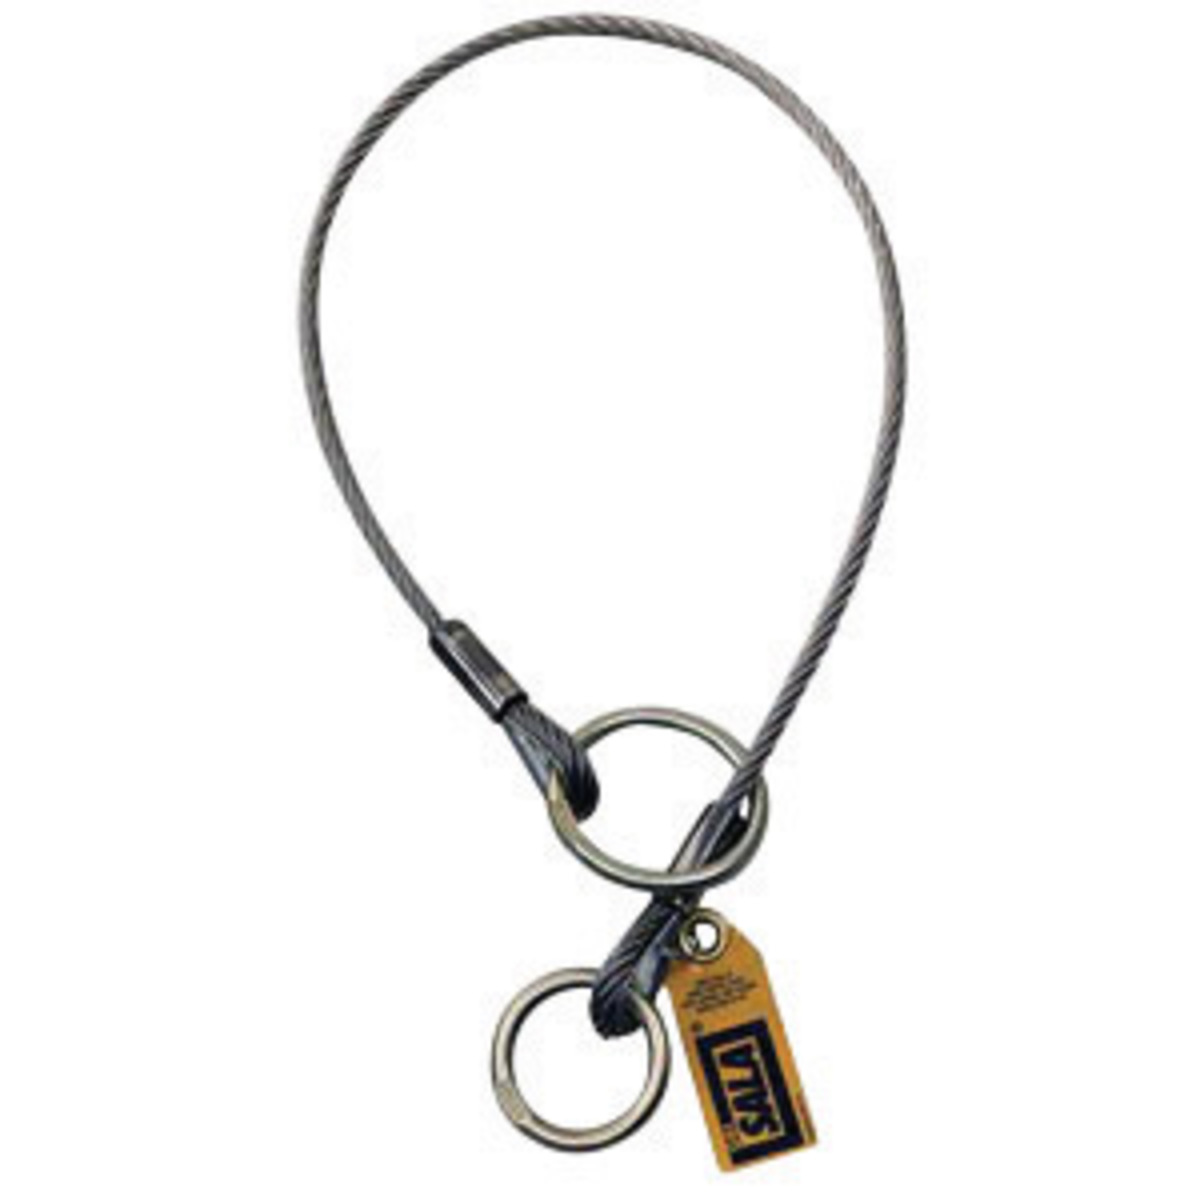 Dbi Sala 5900550 4 Stainless Steel Cable Choker With D